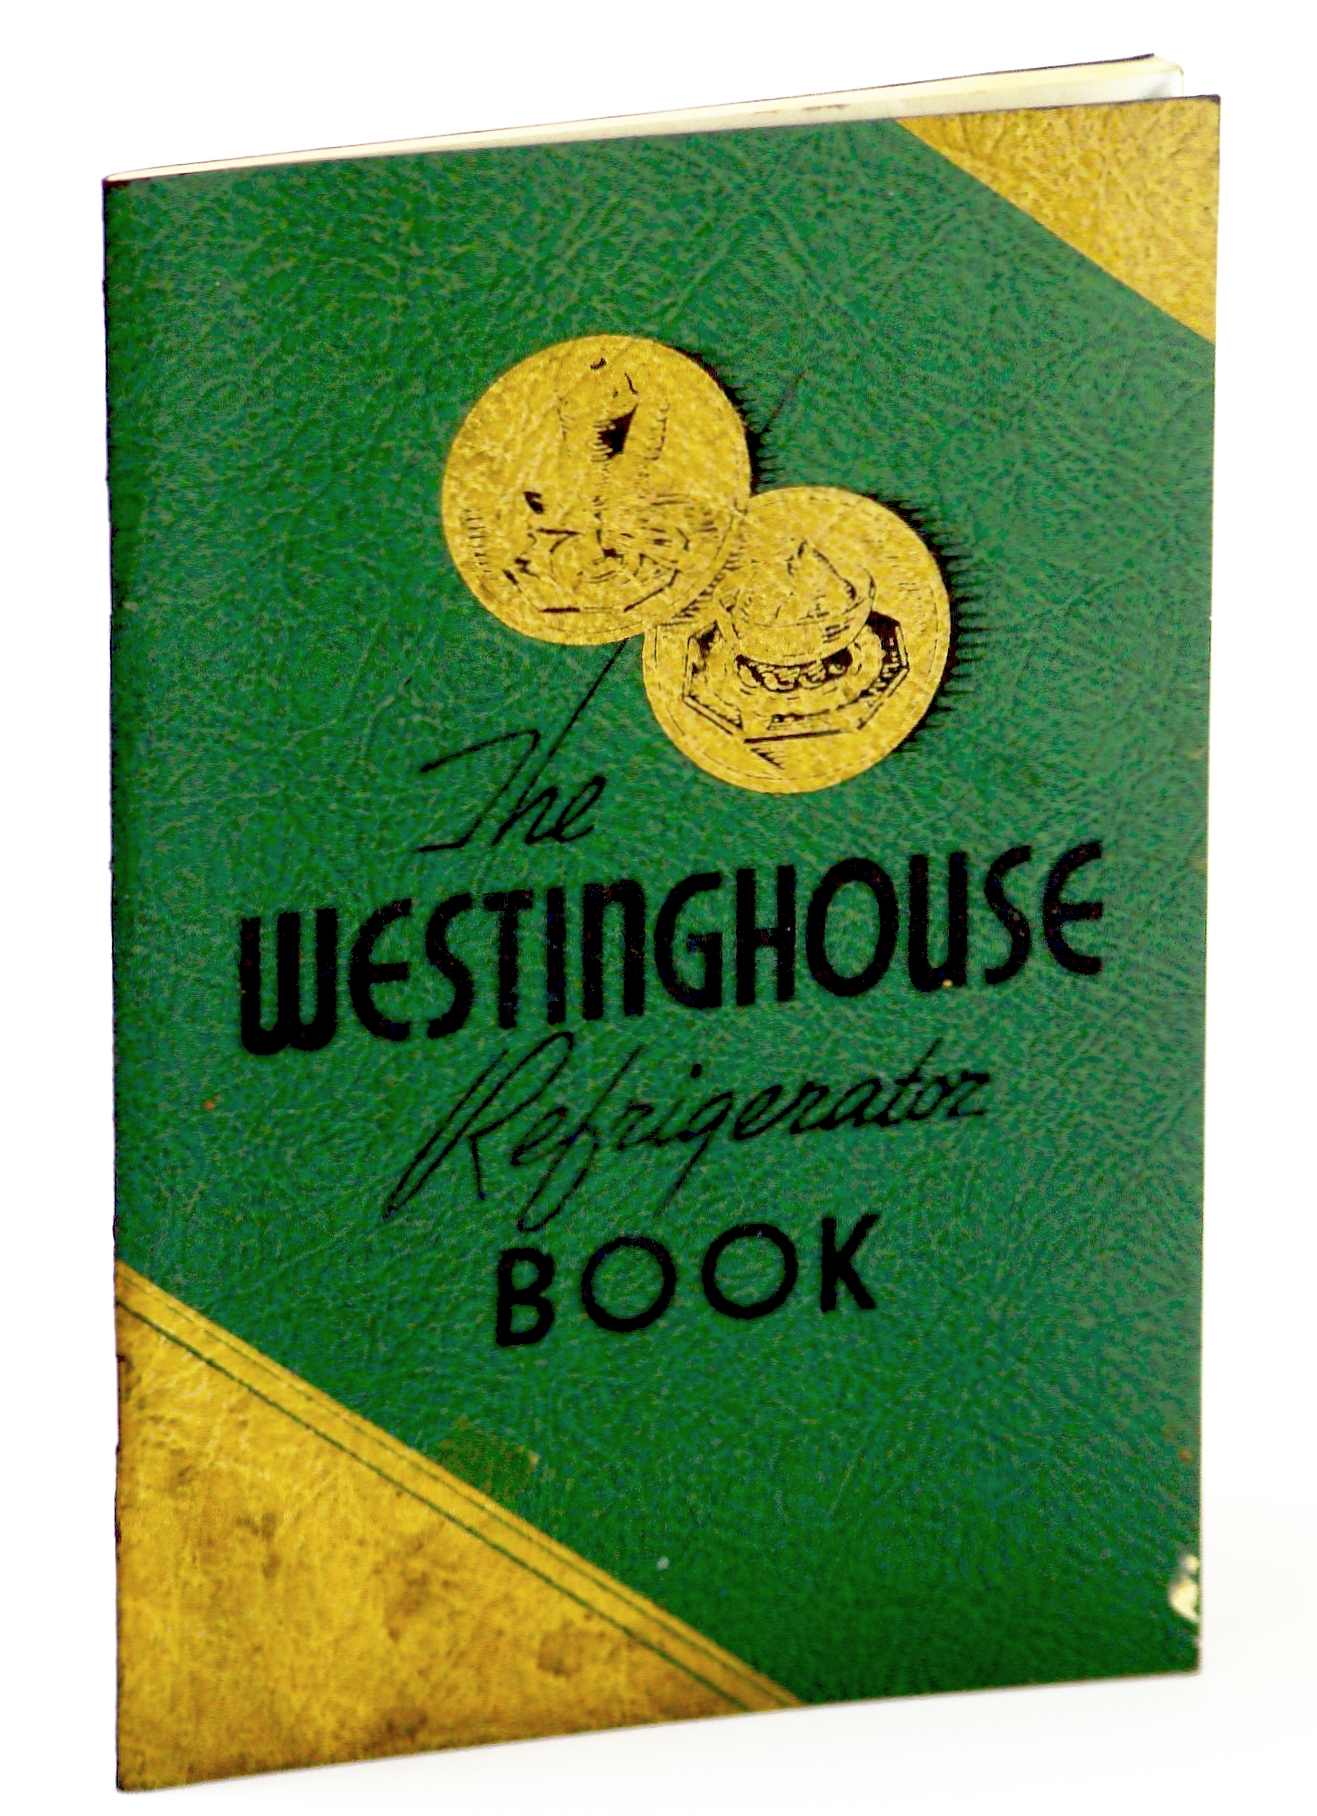 Image for The Westinghouse Refrigerator Recipe Book